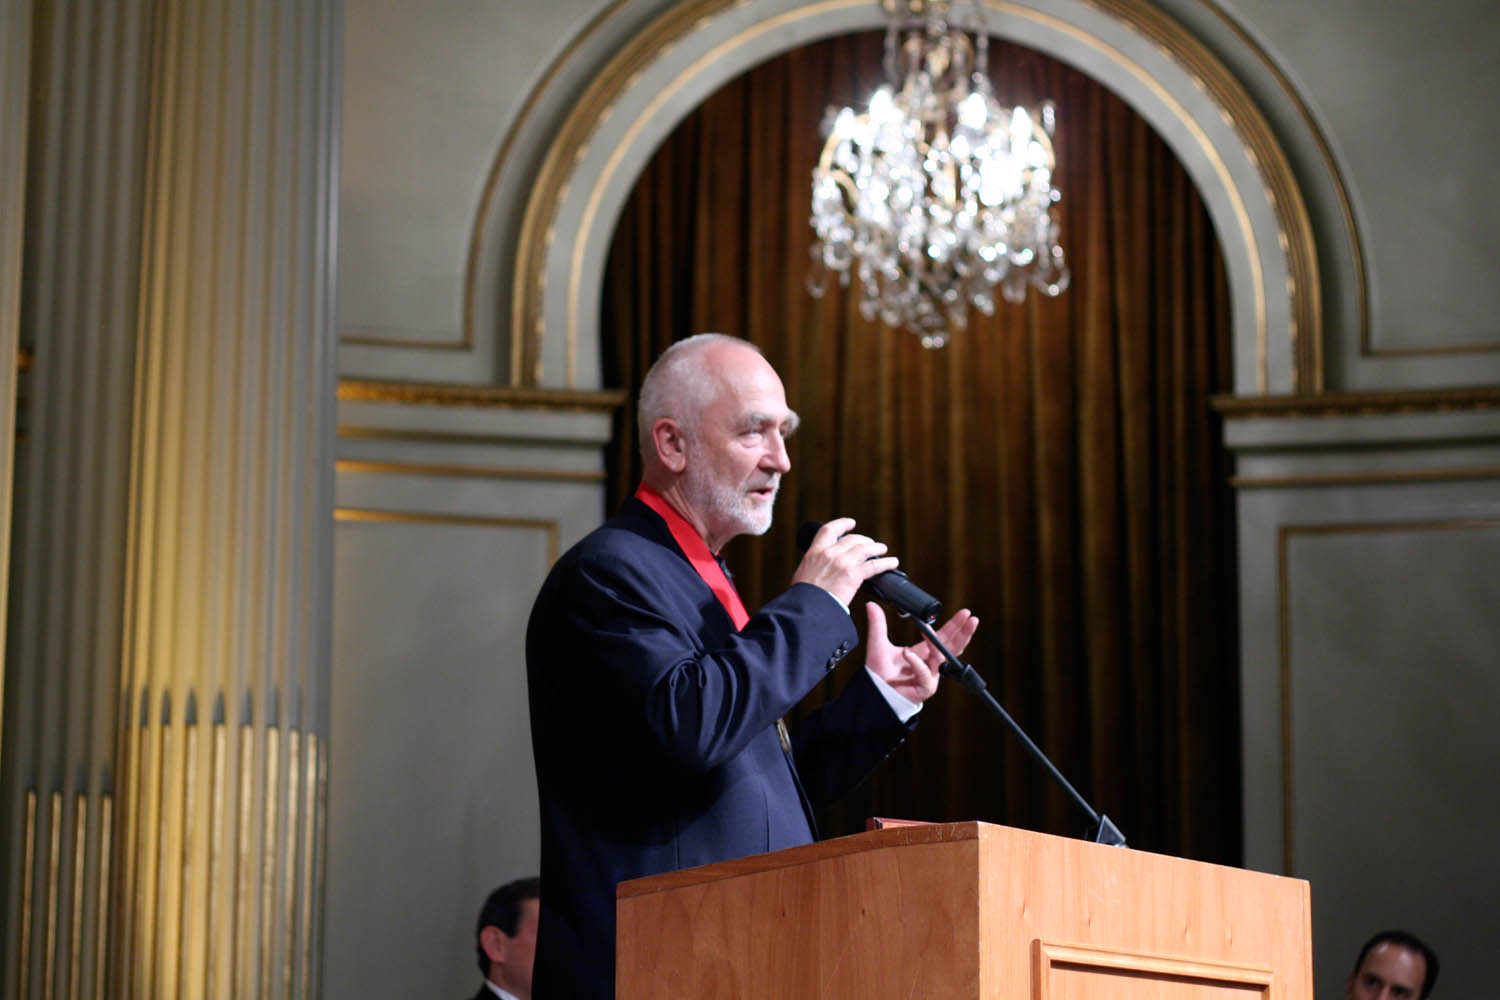 Pritzker Prize Ceremony: Peter Zumthor